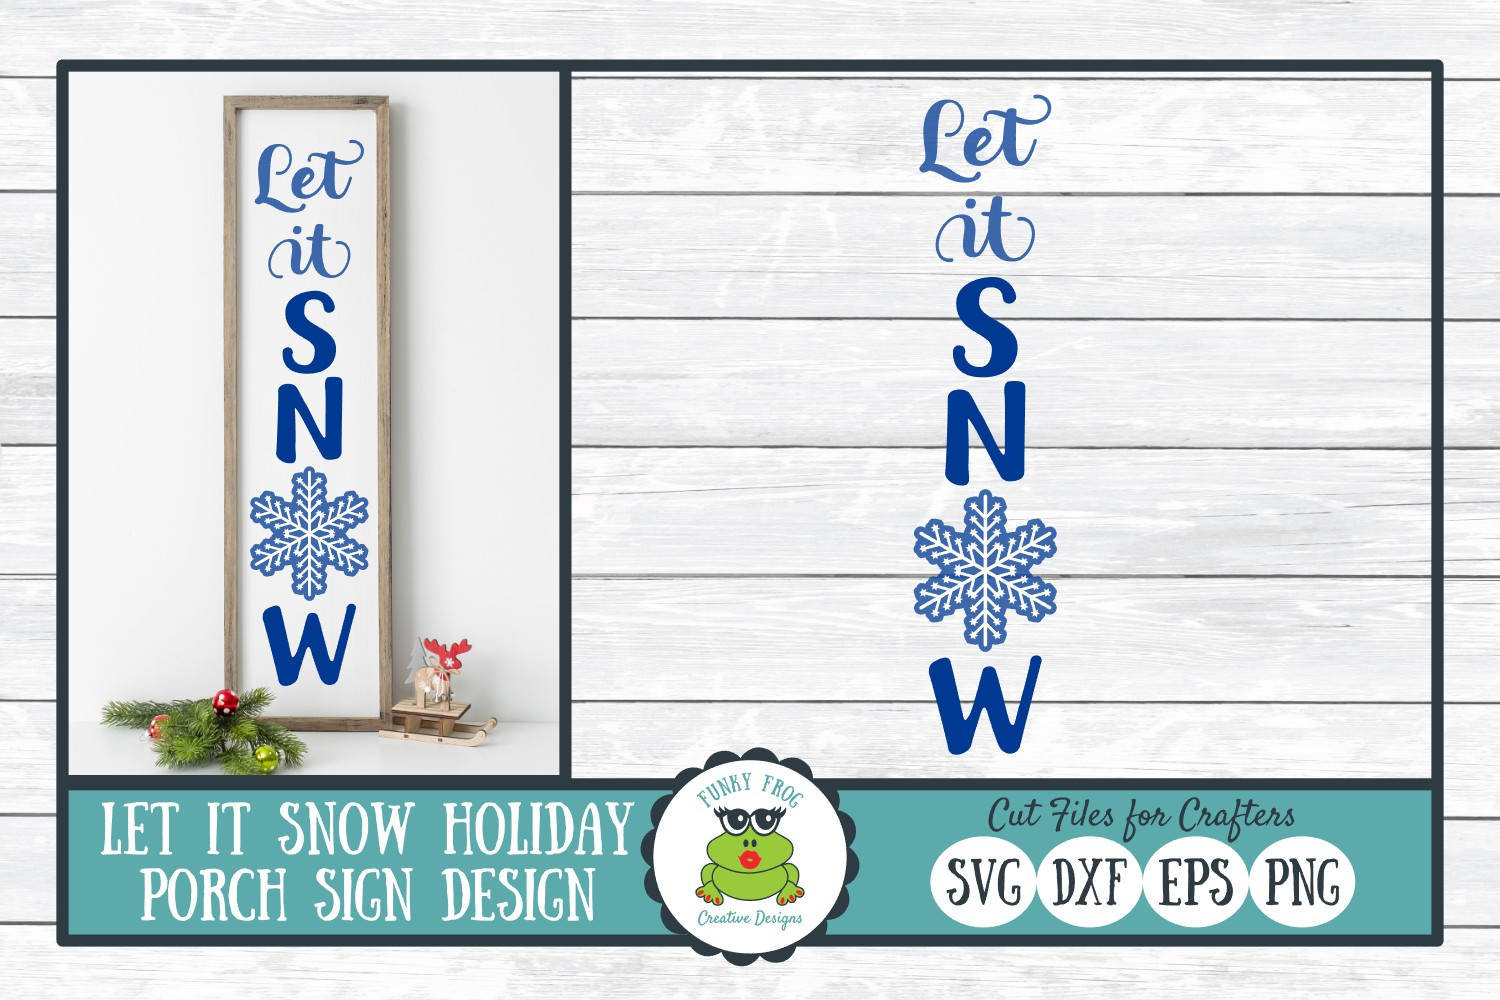 Let It Snow Holiday Porch Sign Design - Christmas SVG example image 1